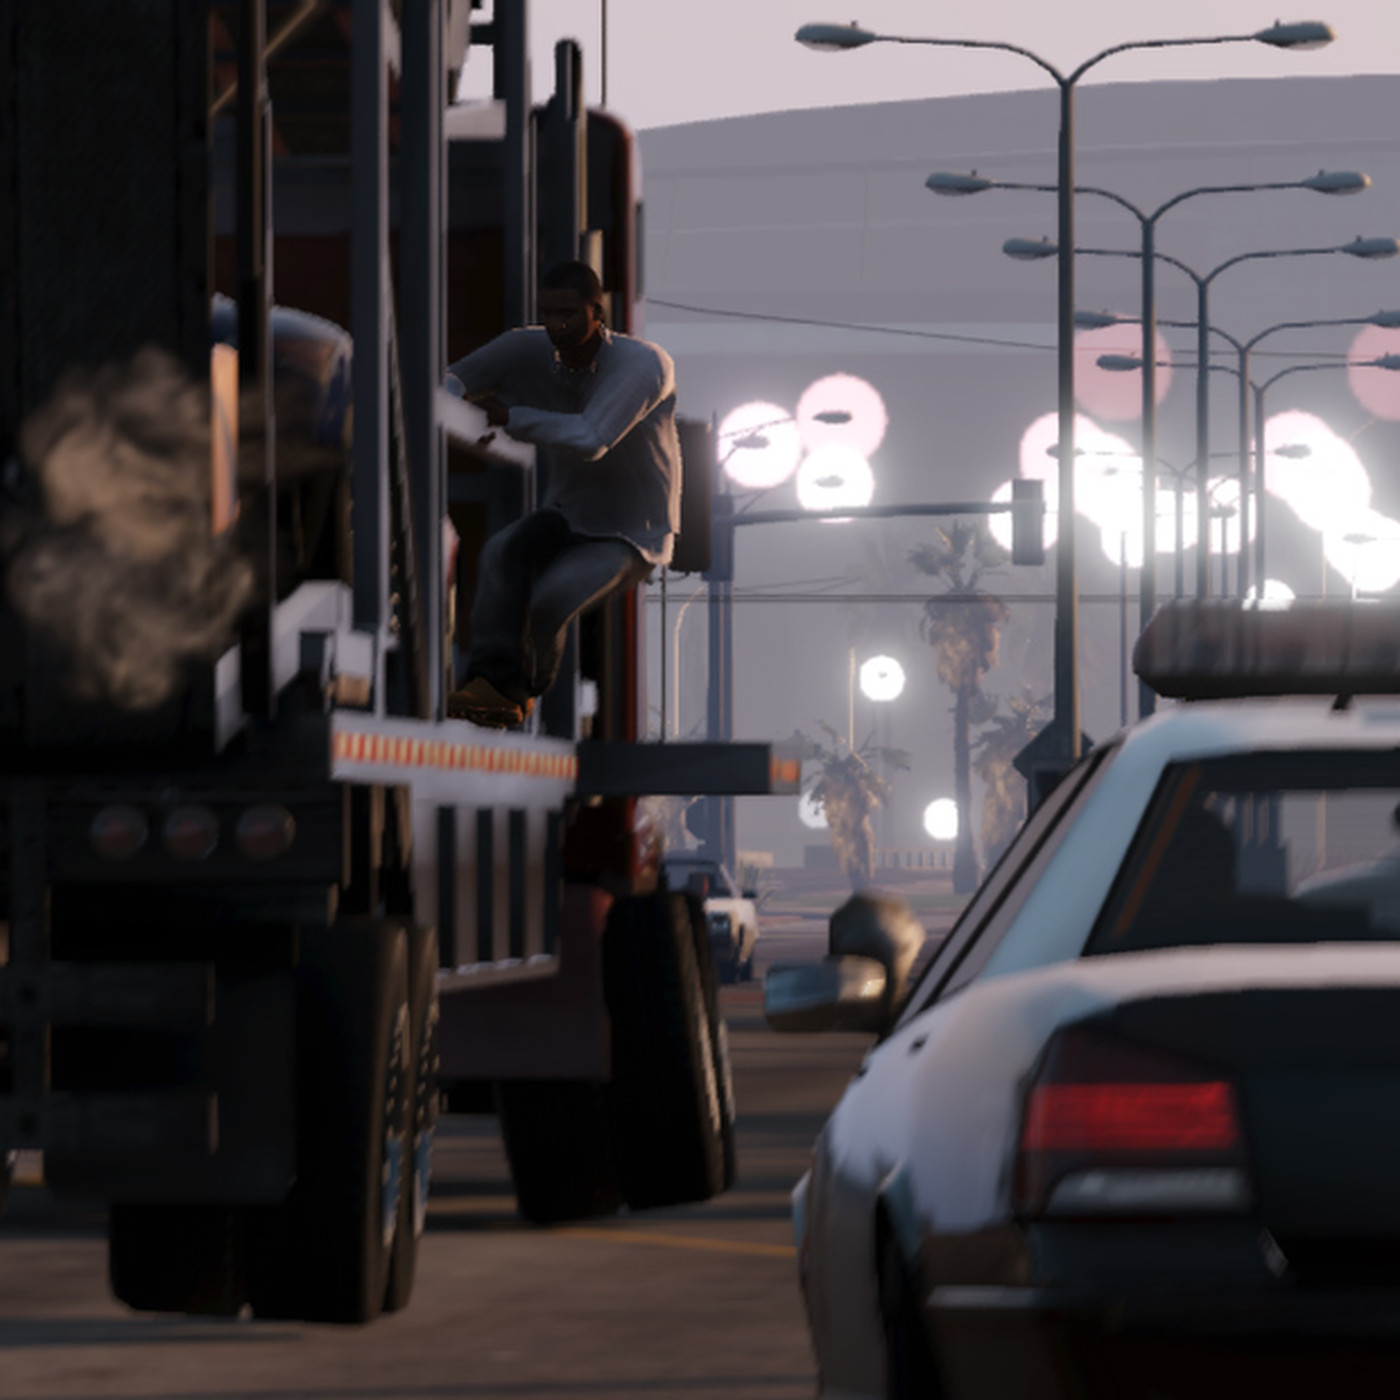 New 'Grand Theft Auto V' trailer shows off multiplayer - The Verge